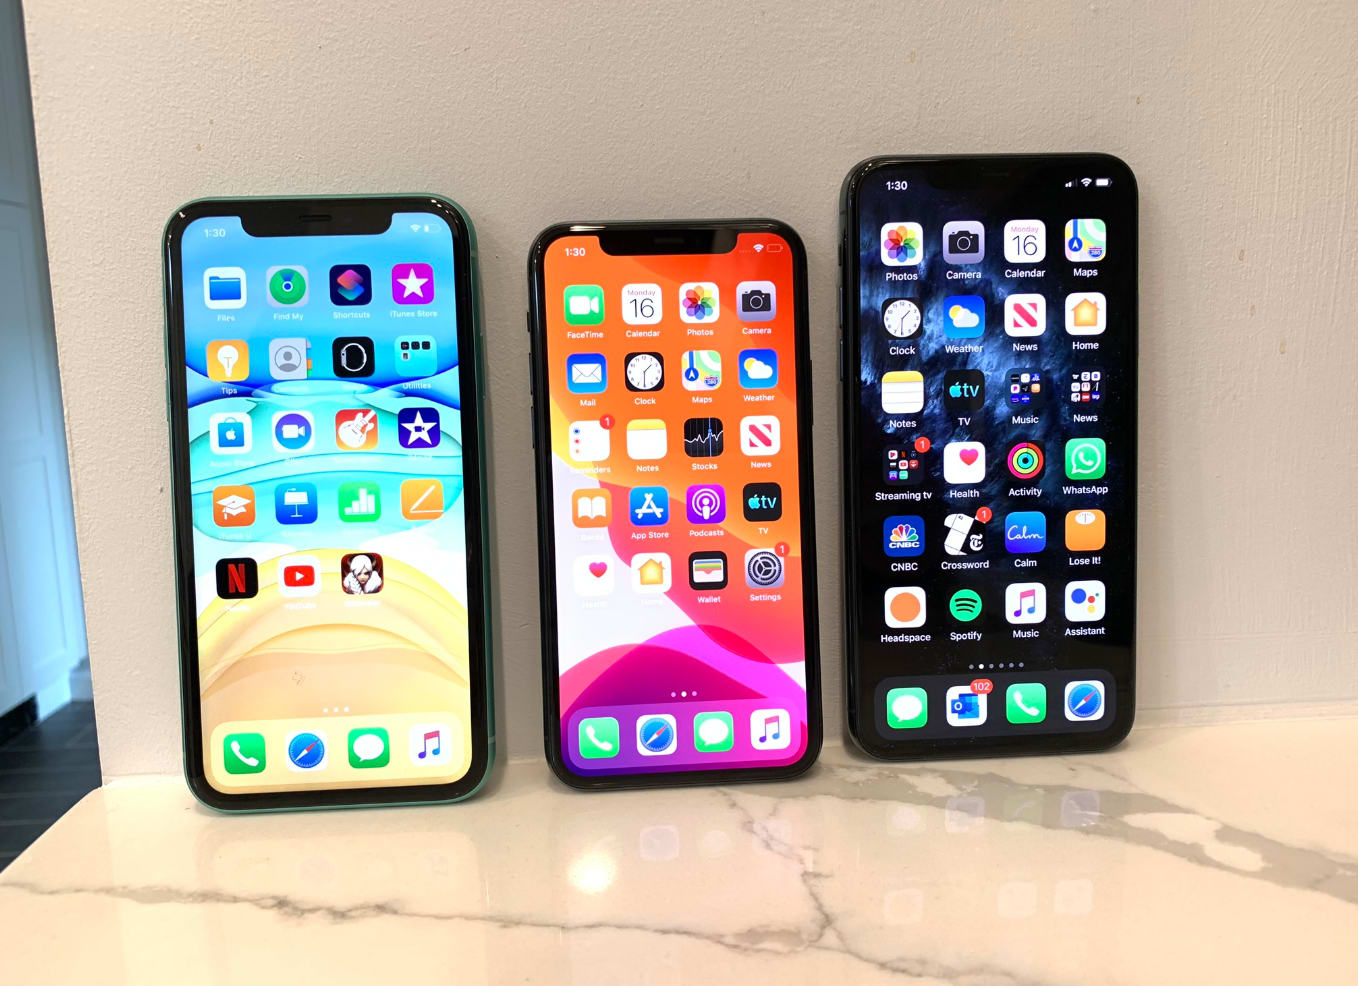 JP Morgan expects Apple shares to rise over 20% on better than expected iPhone sales – CNBC